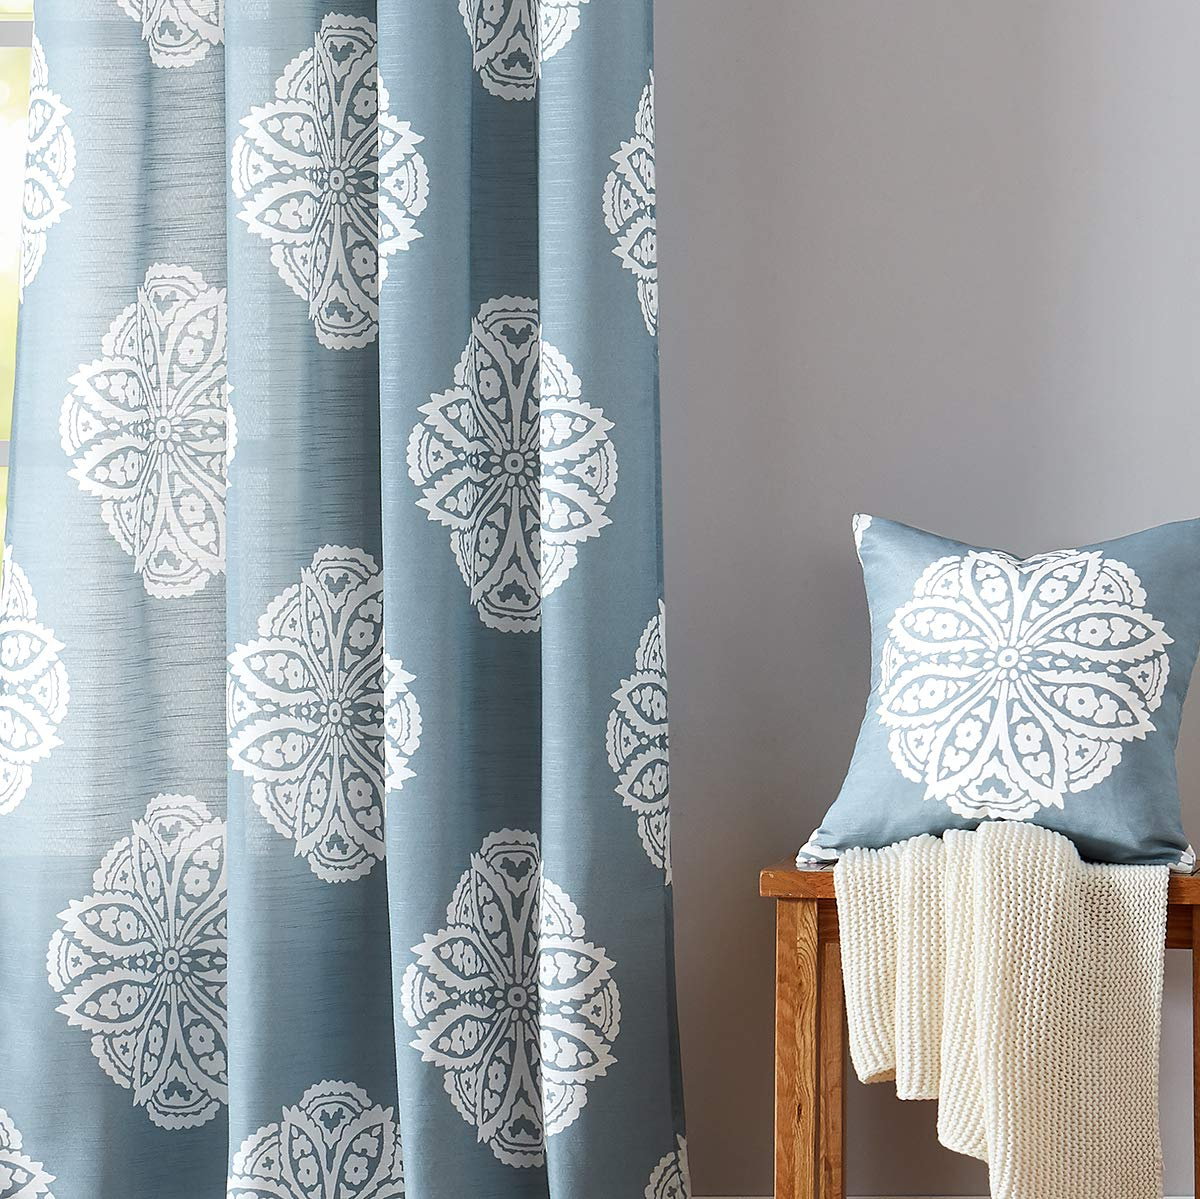 """Pastel Damask Printed Room Darkening Grommet Window Curtain Panel Pairs In Popular White And Blue Semi Sheer Curtains For Living Room 84"""" Floral Medallion Print Window Panels Grommet Top 2 Pc (View 20 of 20)"""